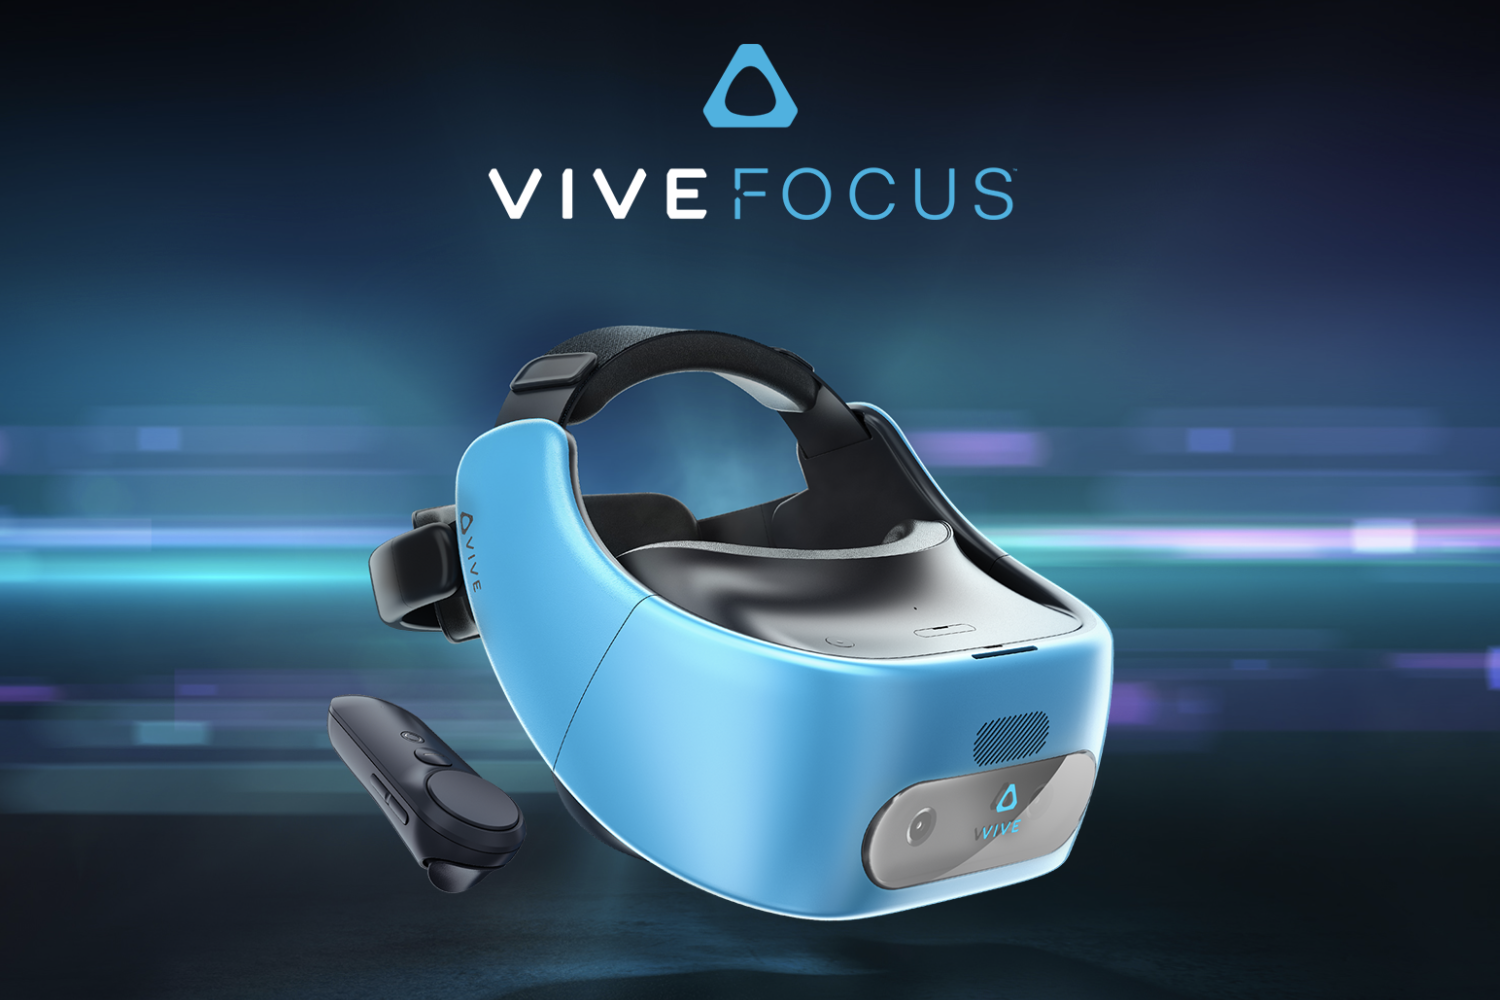 HTC Vive Focus is sensor-packed wireless stand-alone VR headset